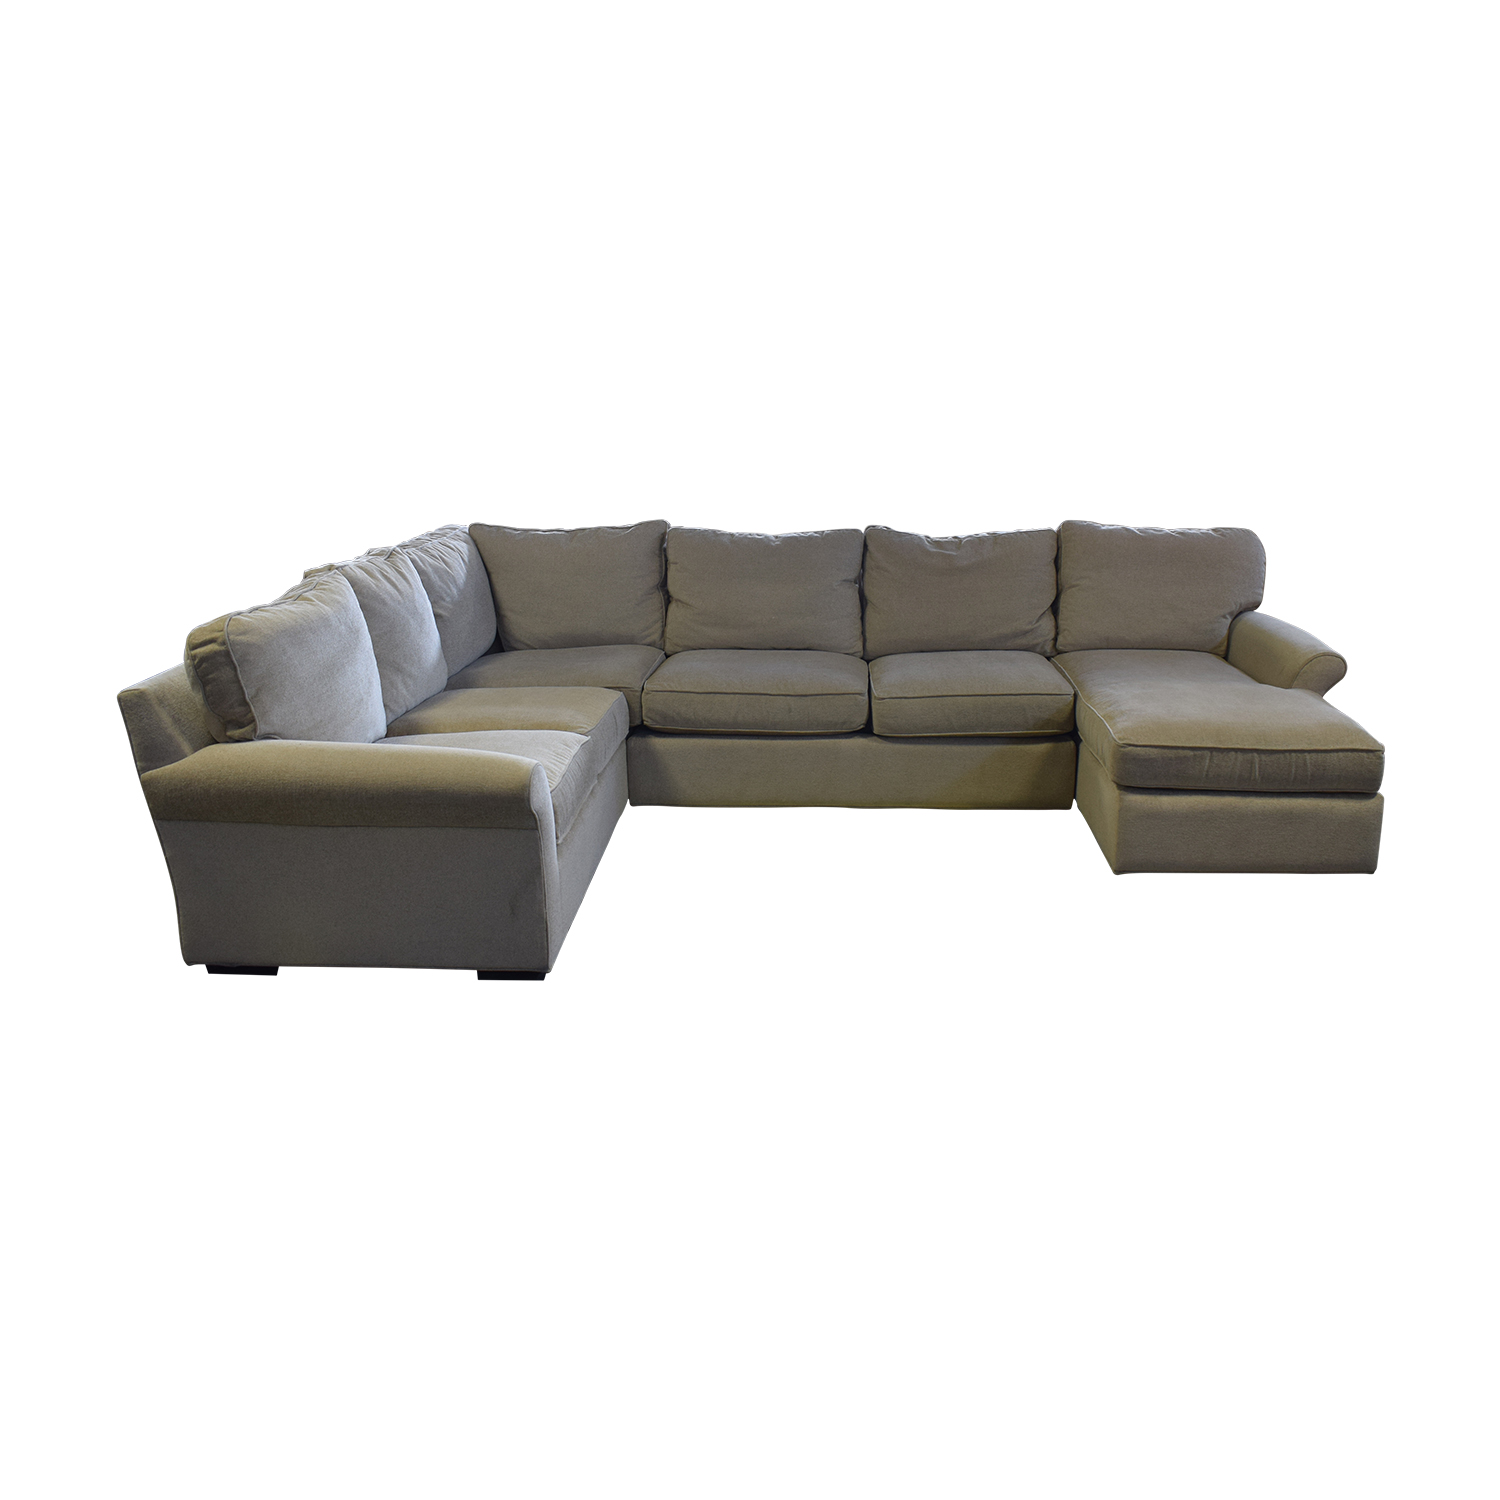 Macy's Macy's Beige L-Shaped Chaise Sectional Sectionals